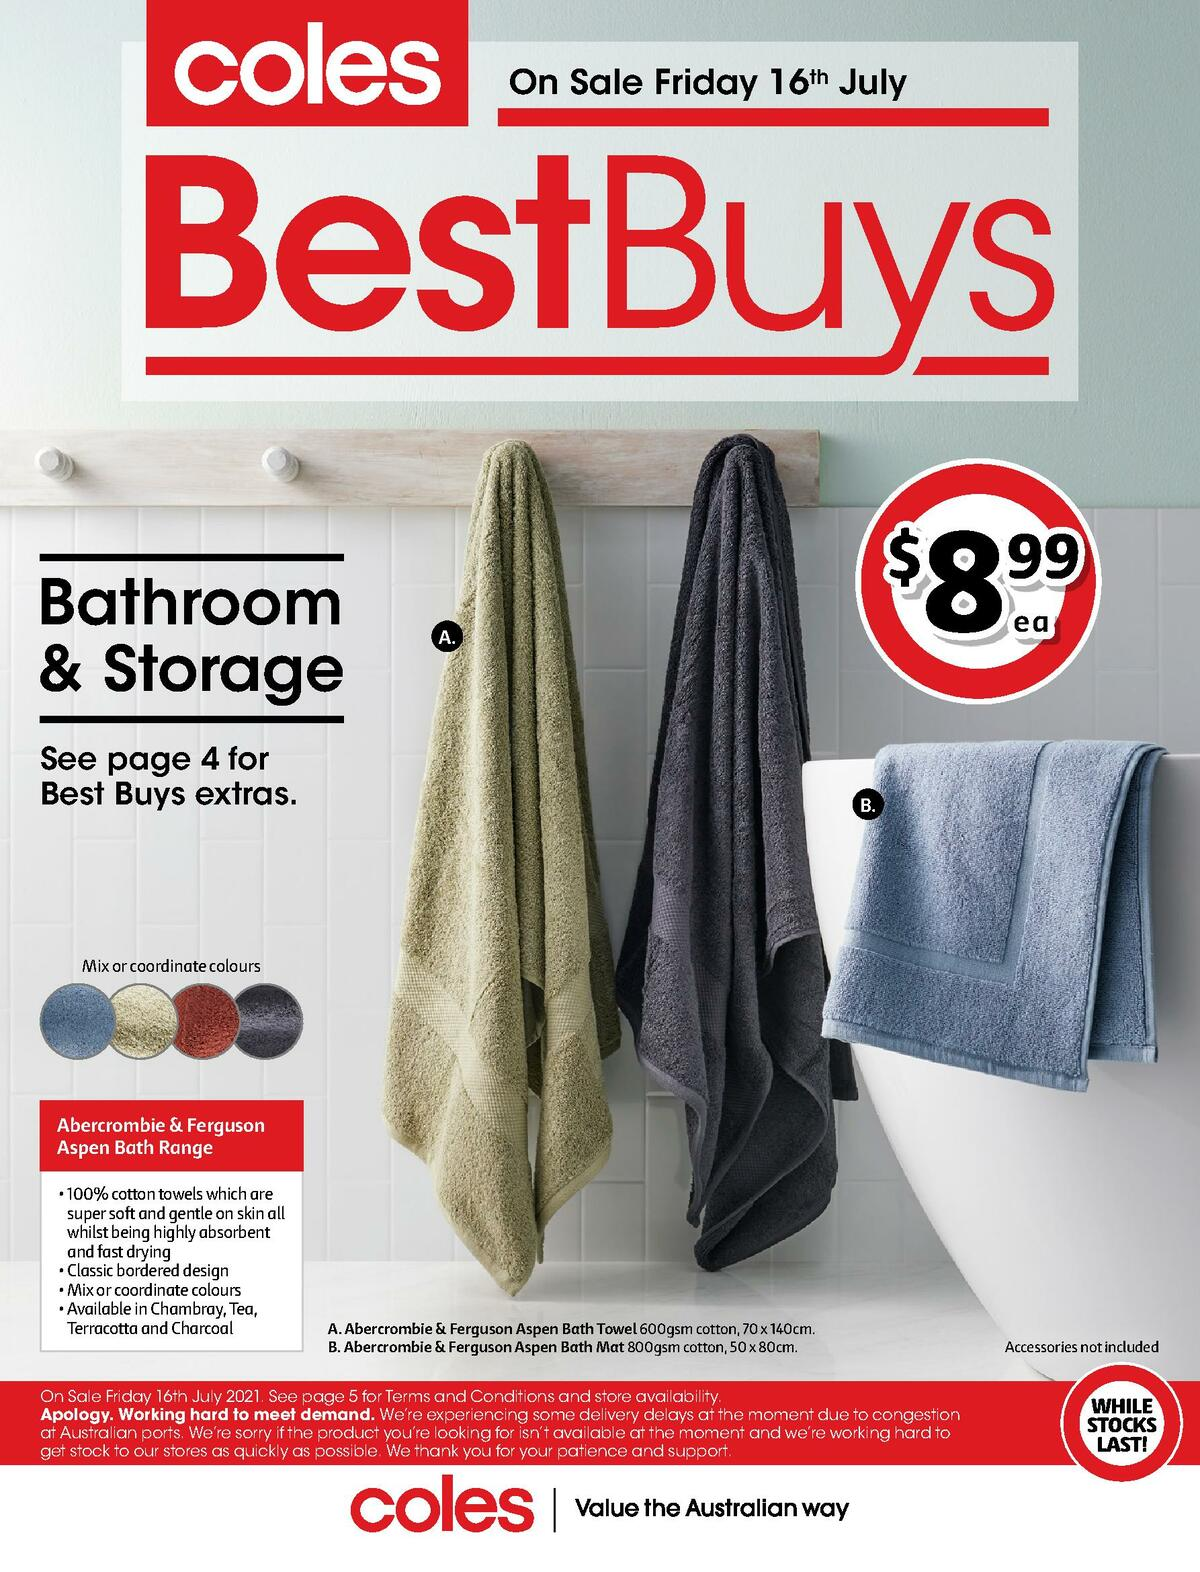 Coles Best Buys - Bathroom & Storage Catalogues from July 16